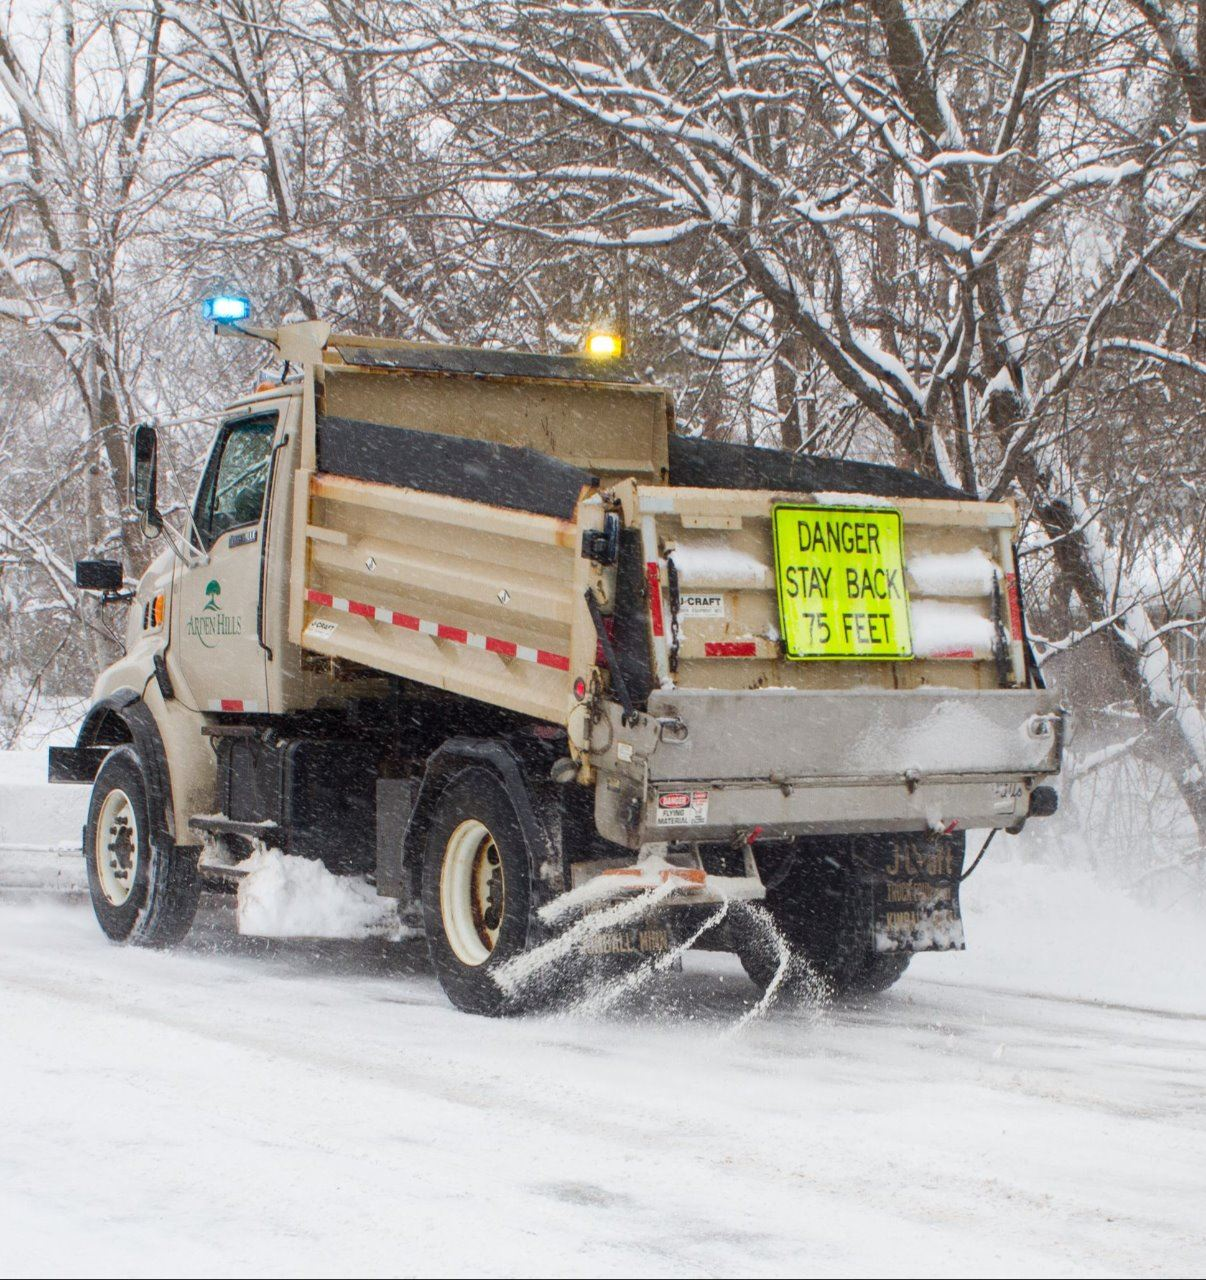 city snowplow on street